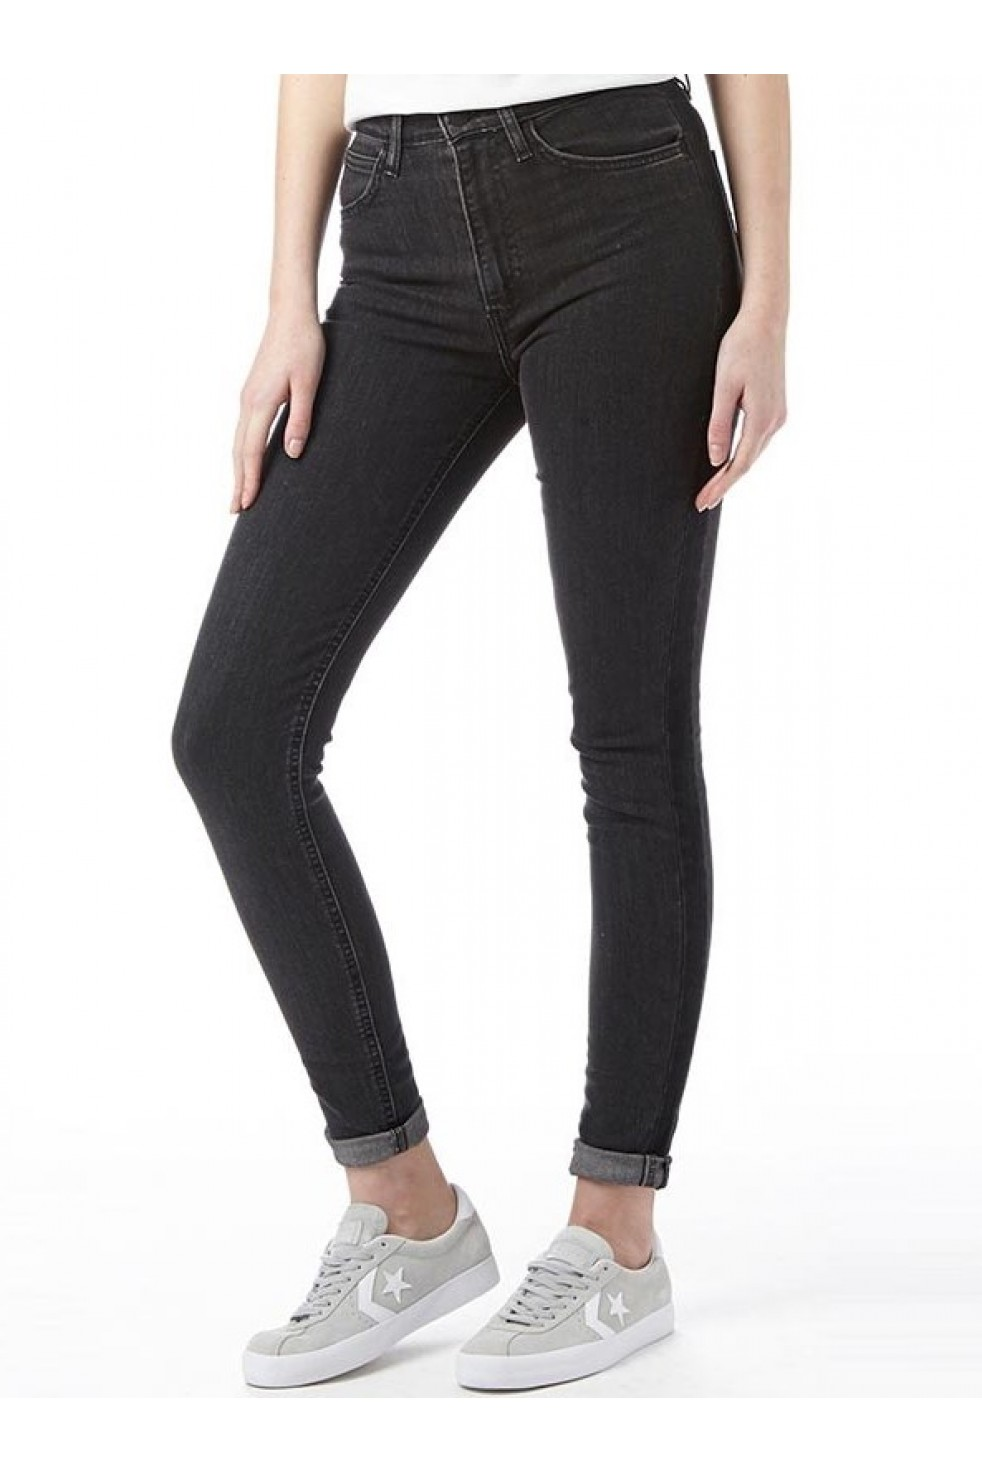 Levis-Bayan-Jean-Pantolon-The-Rebel-High-rise-Skinny-28341-0000